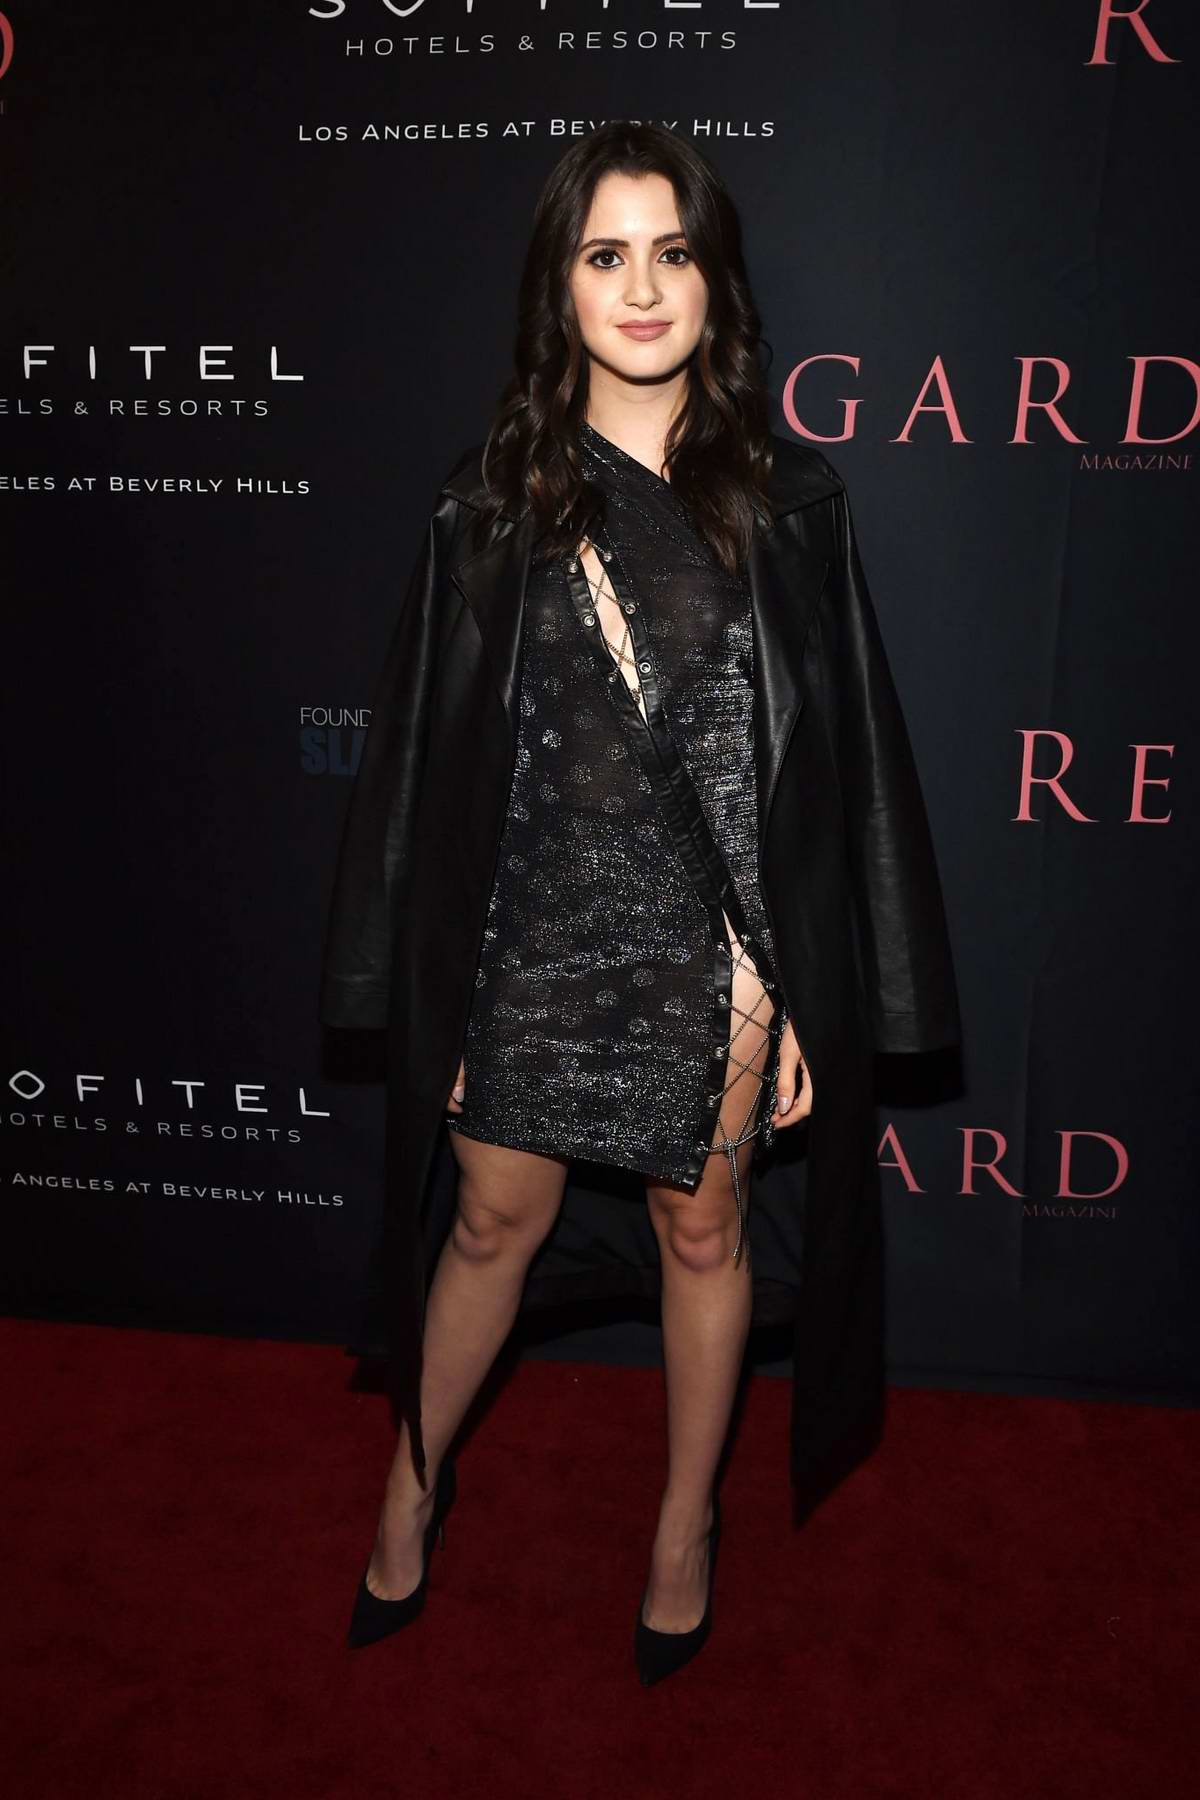 Laura Marano attends the Regard Magazine's 10 Year Anniversary celebration in Los Angeles